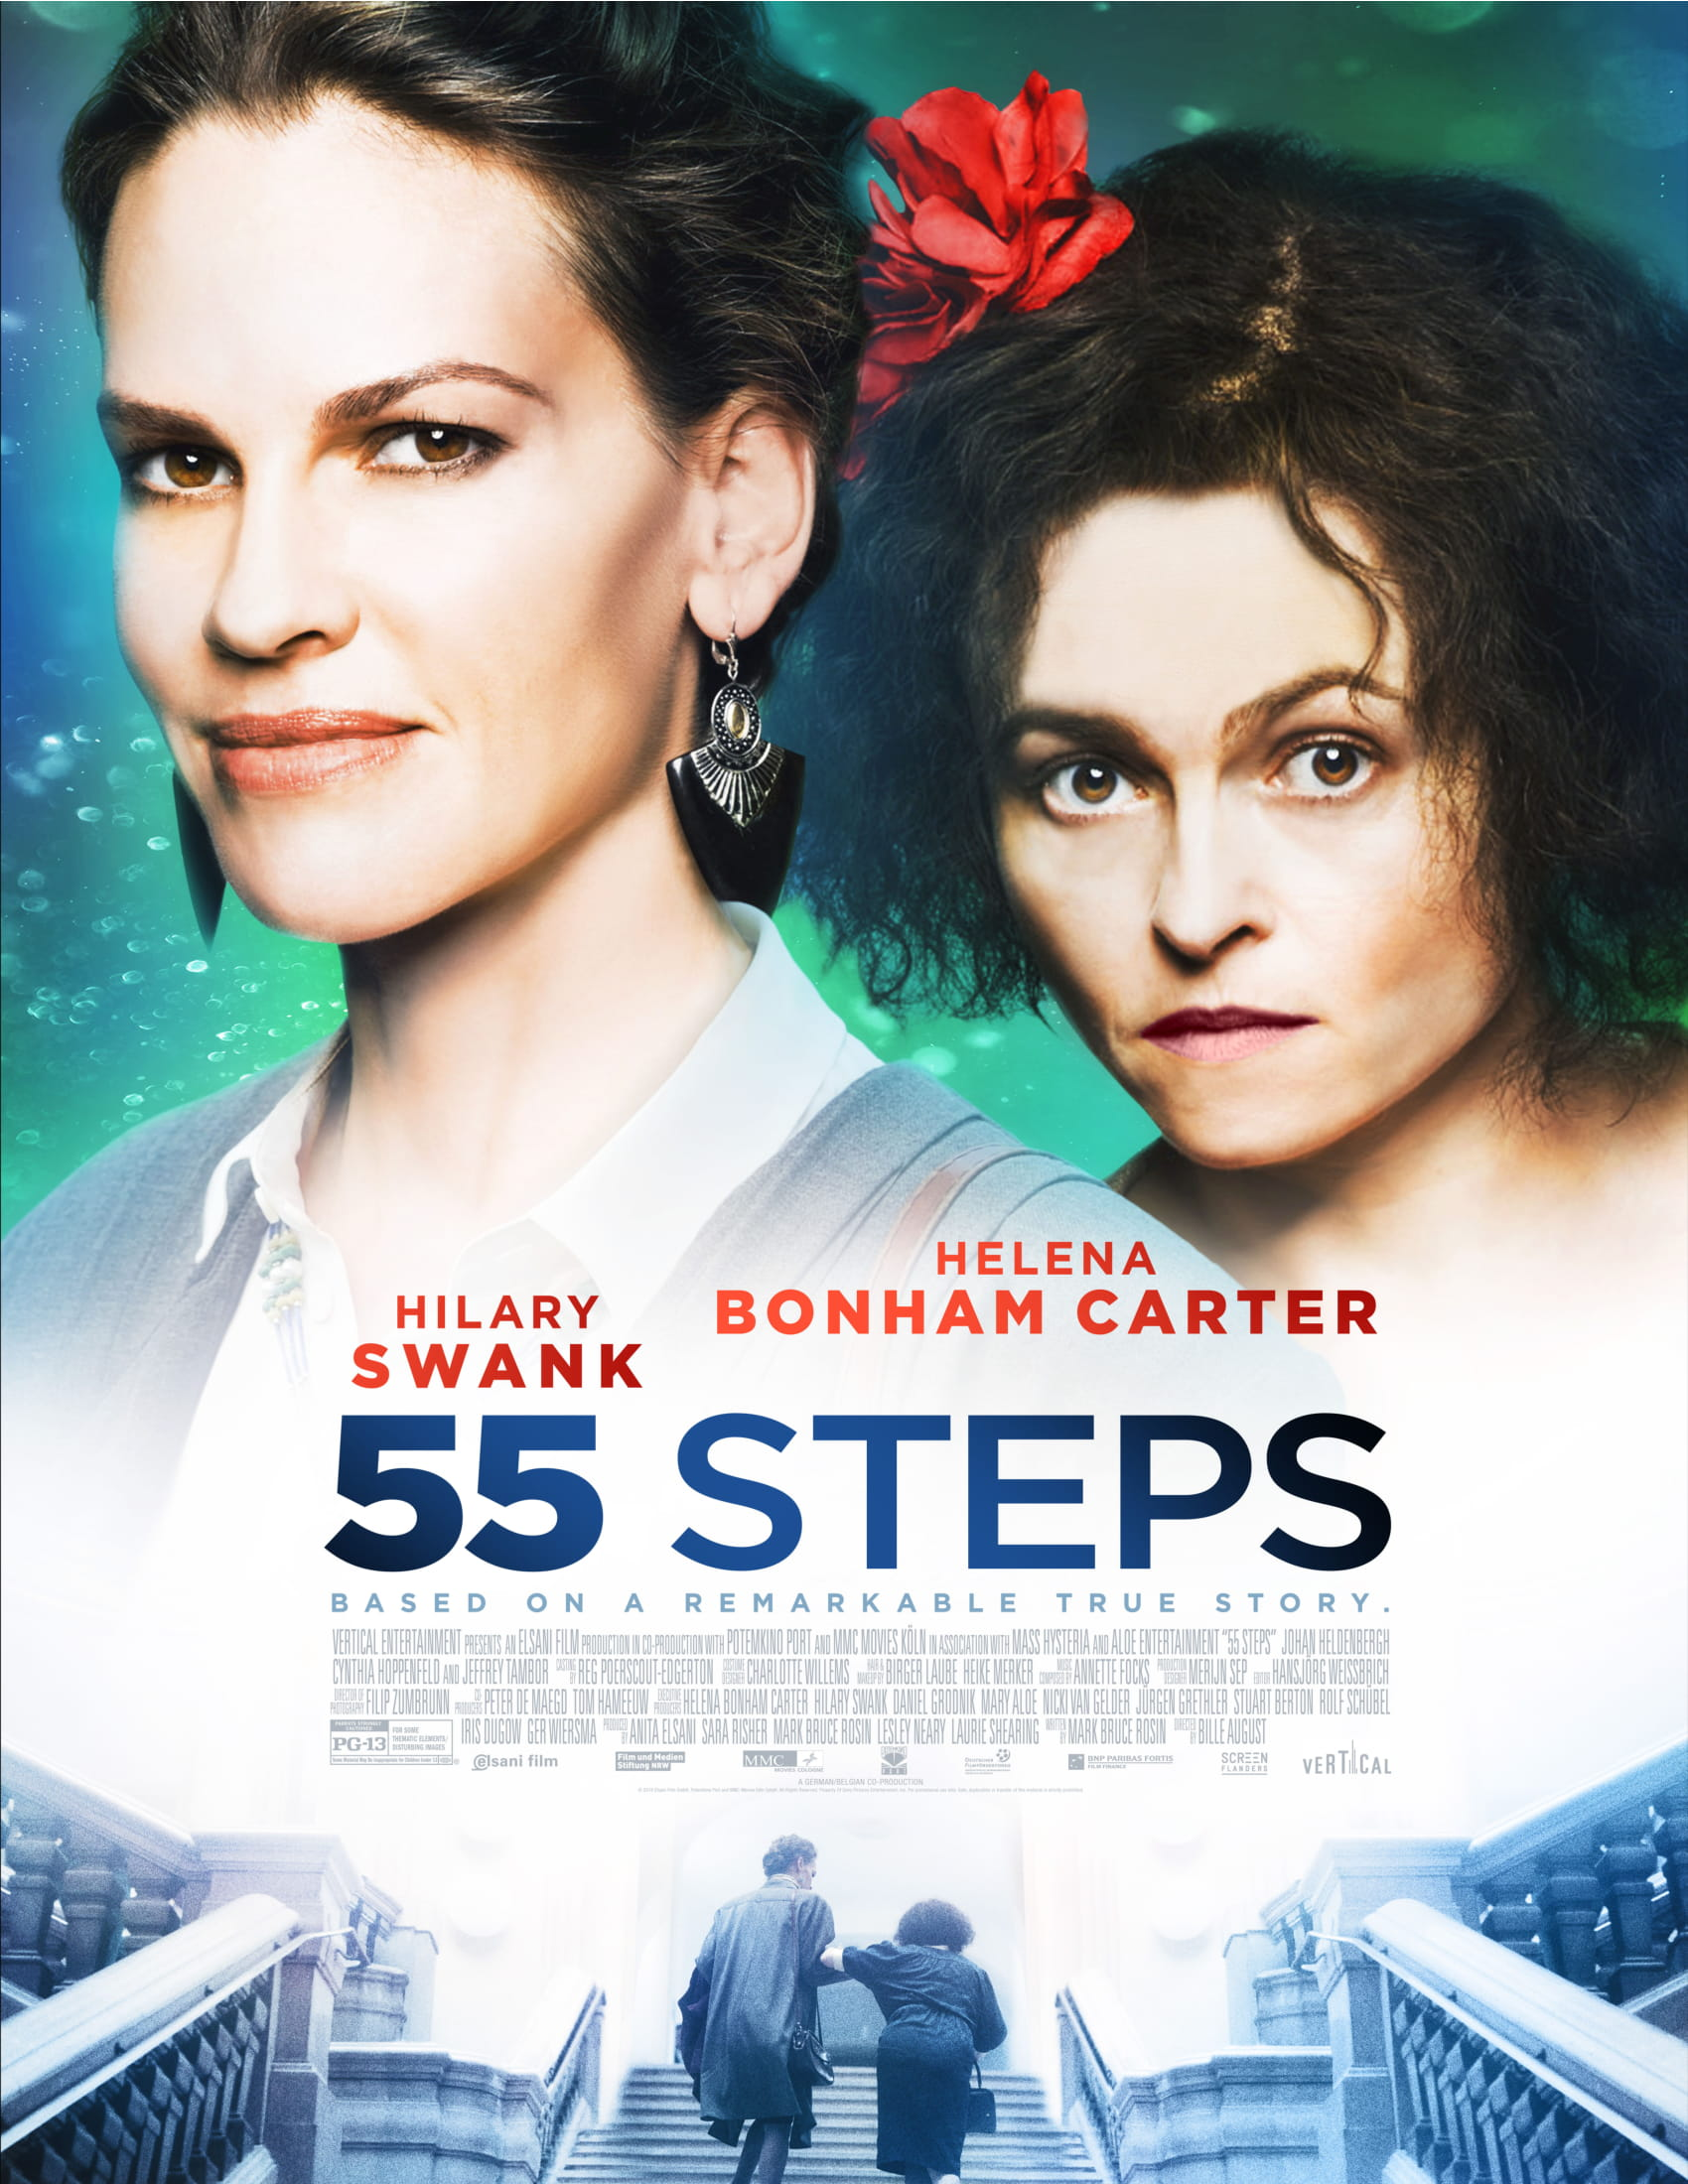 Helena Bonham Carter and Hilary Swank in 55 Steps (2017)